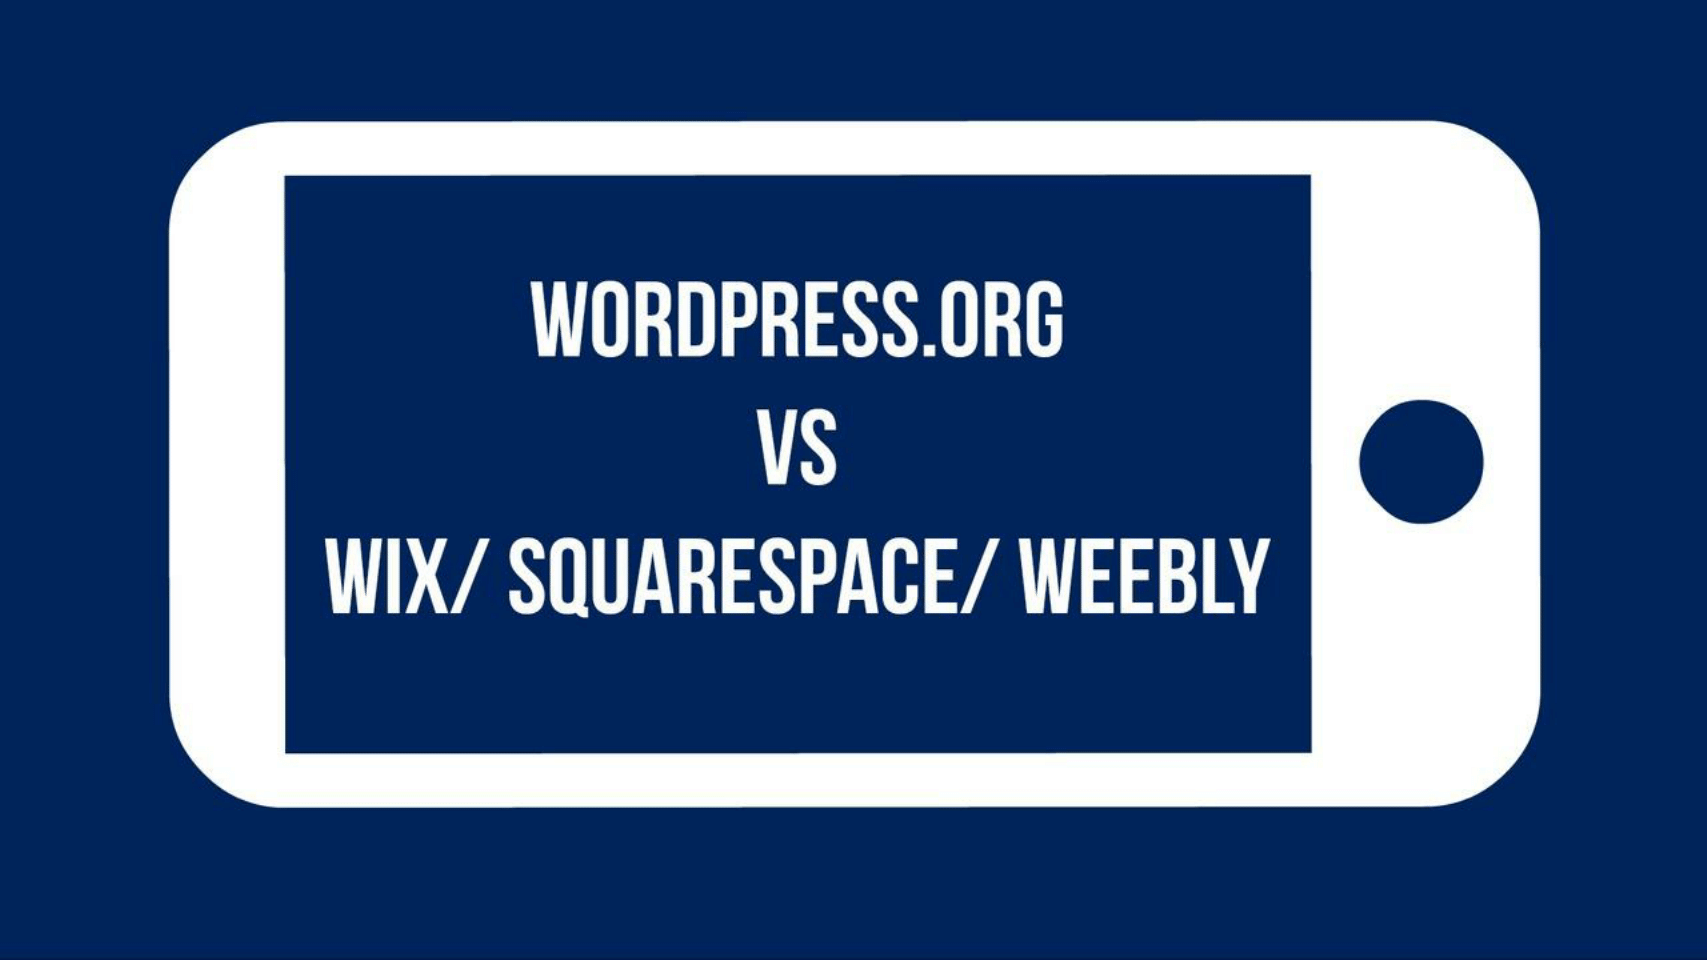 wordpress.org-vs-wix-squarespace-weebly